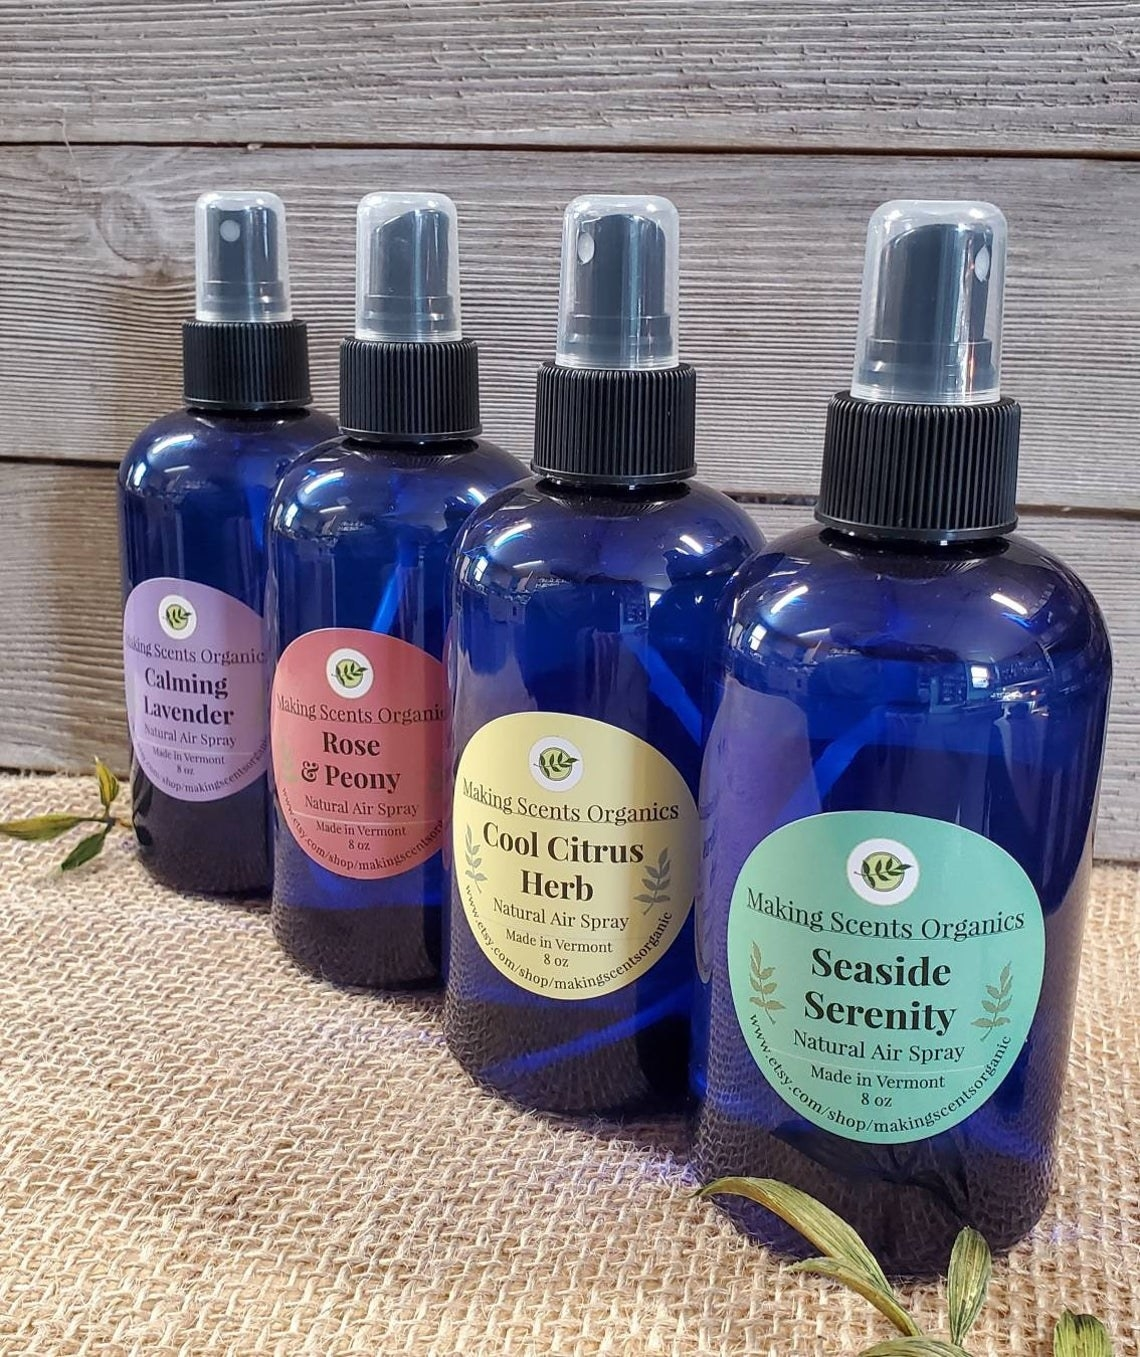 Bottles of the calming lavender, rose and peony, cool citrus herb, and seaside serenity scents